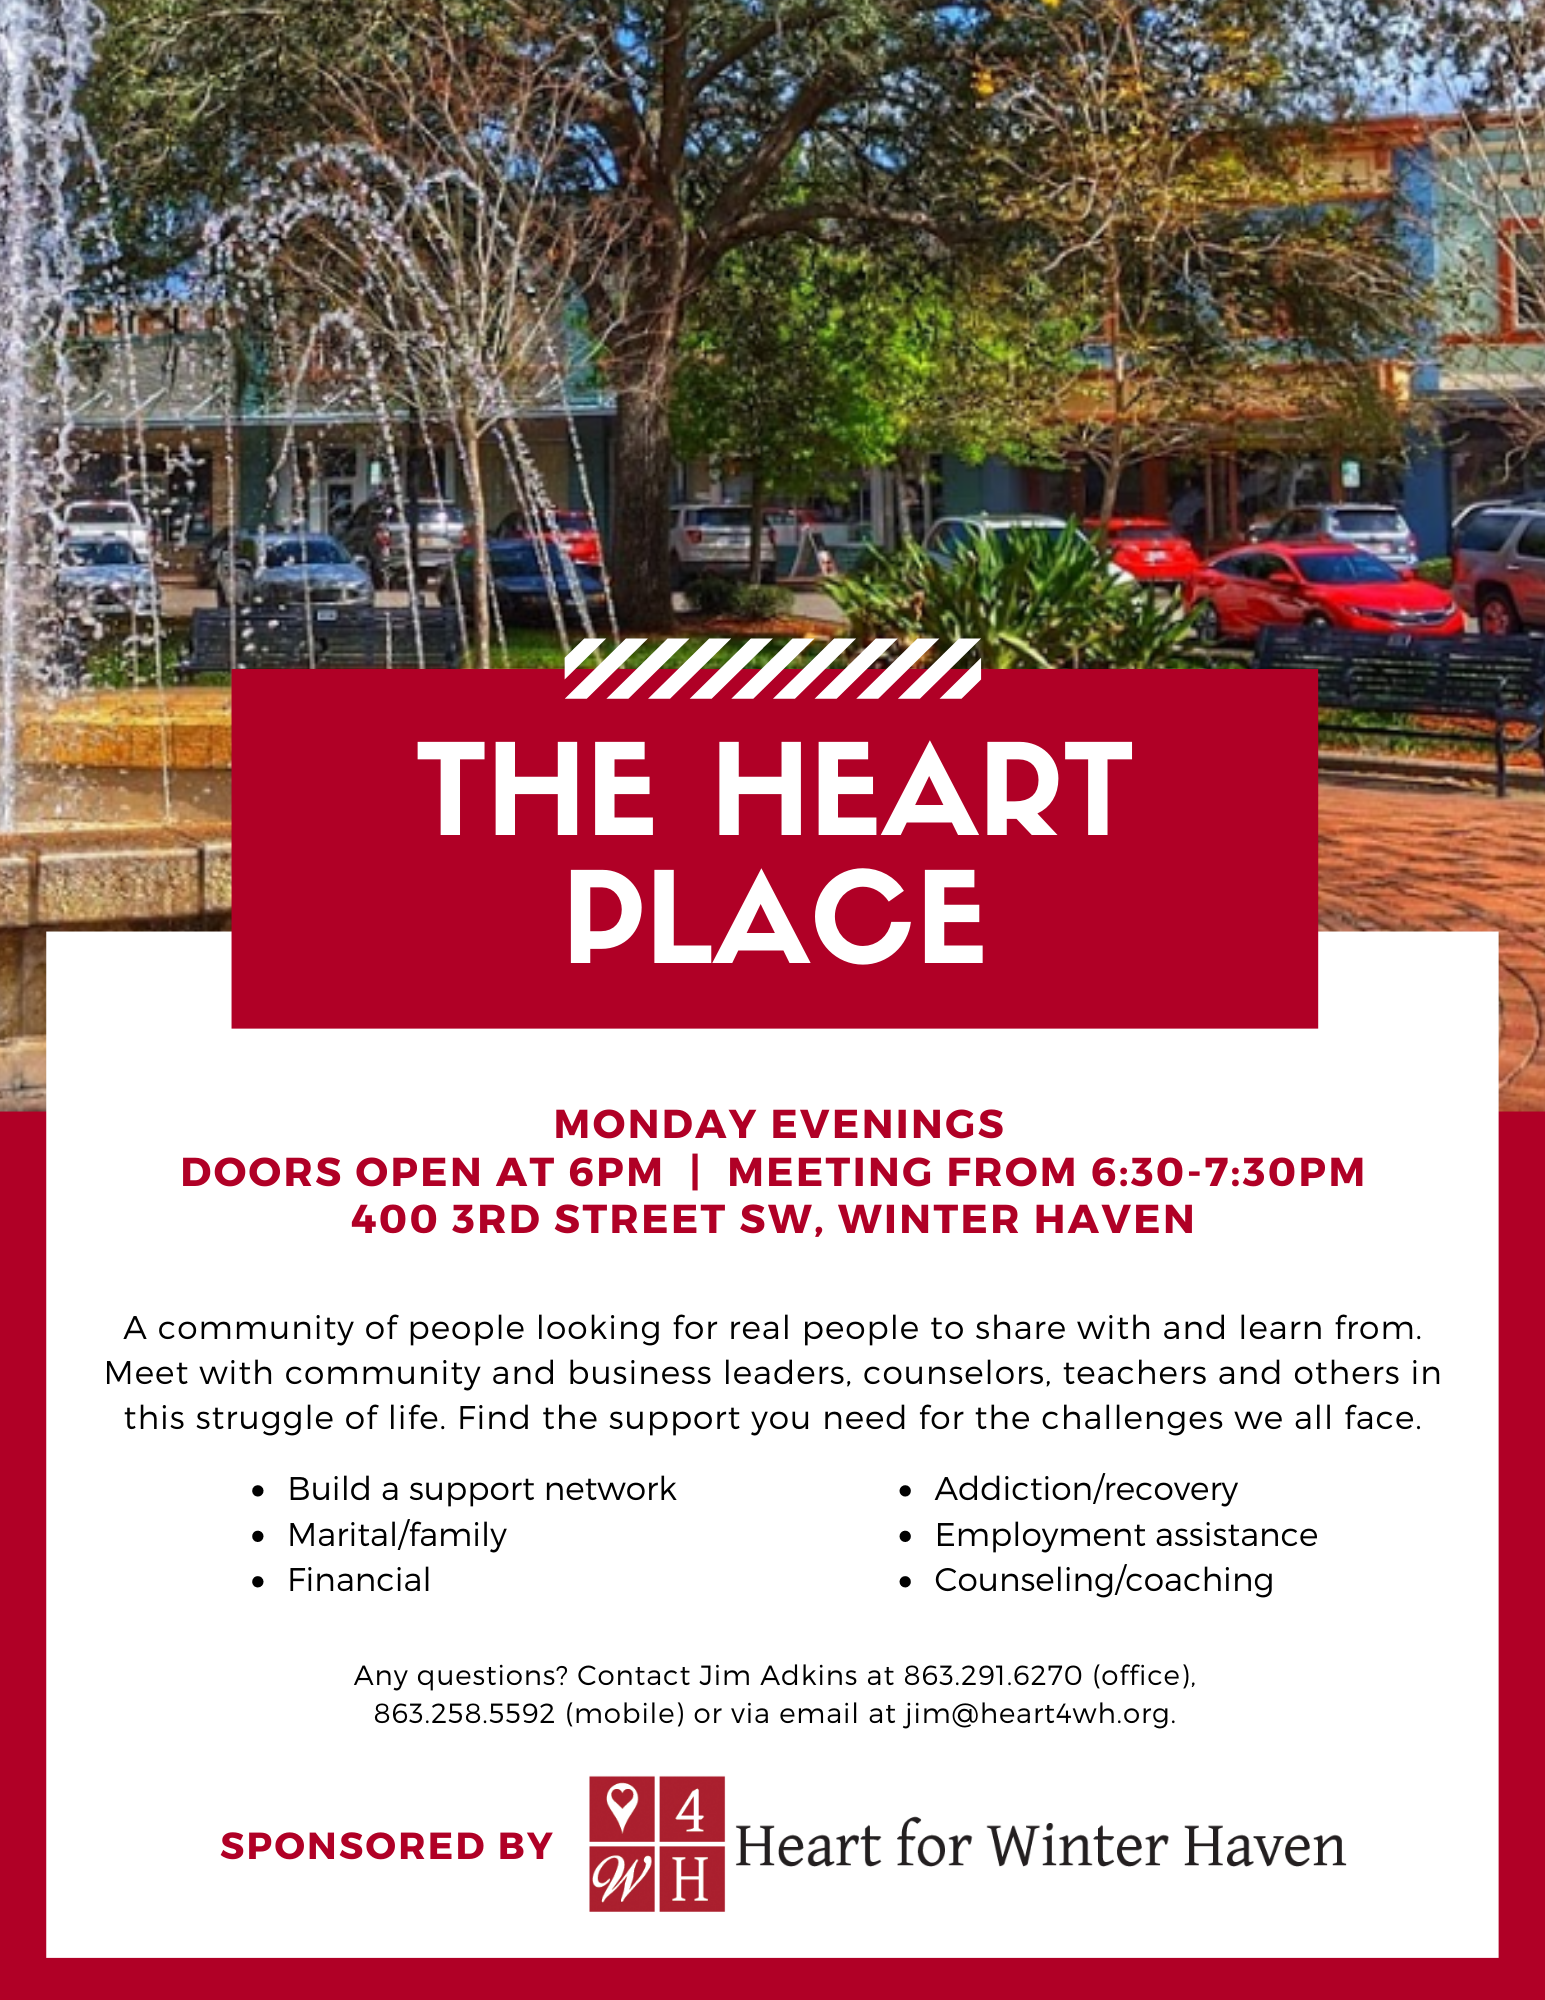 The Heart Place flyer